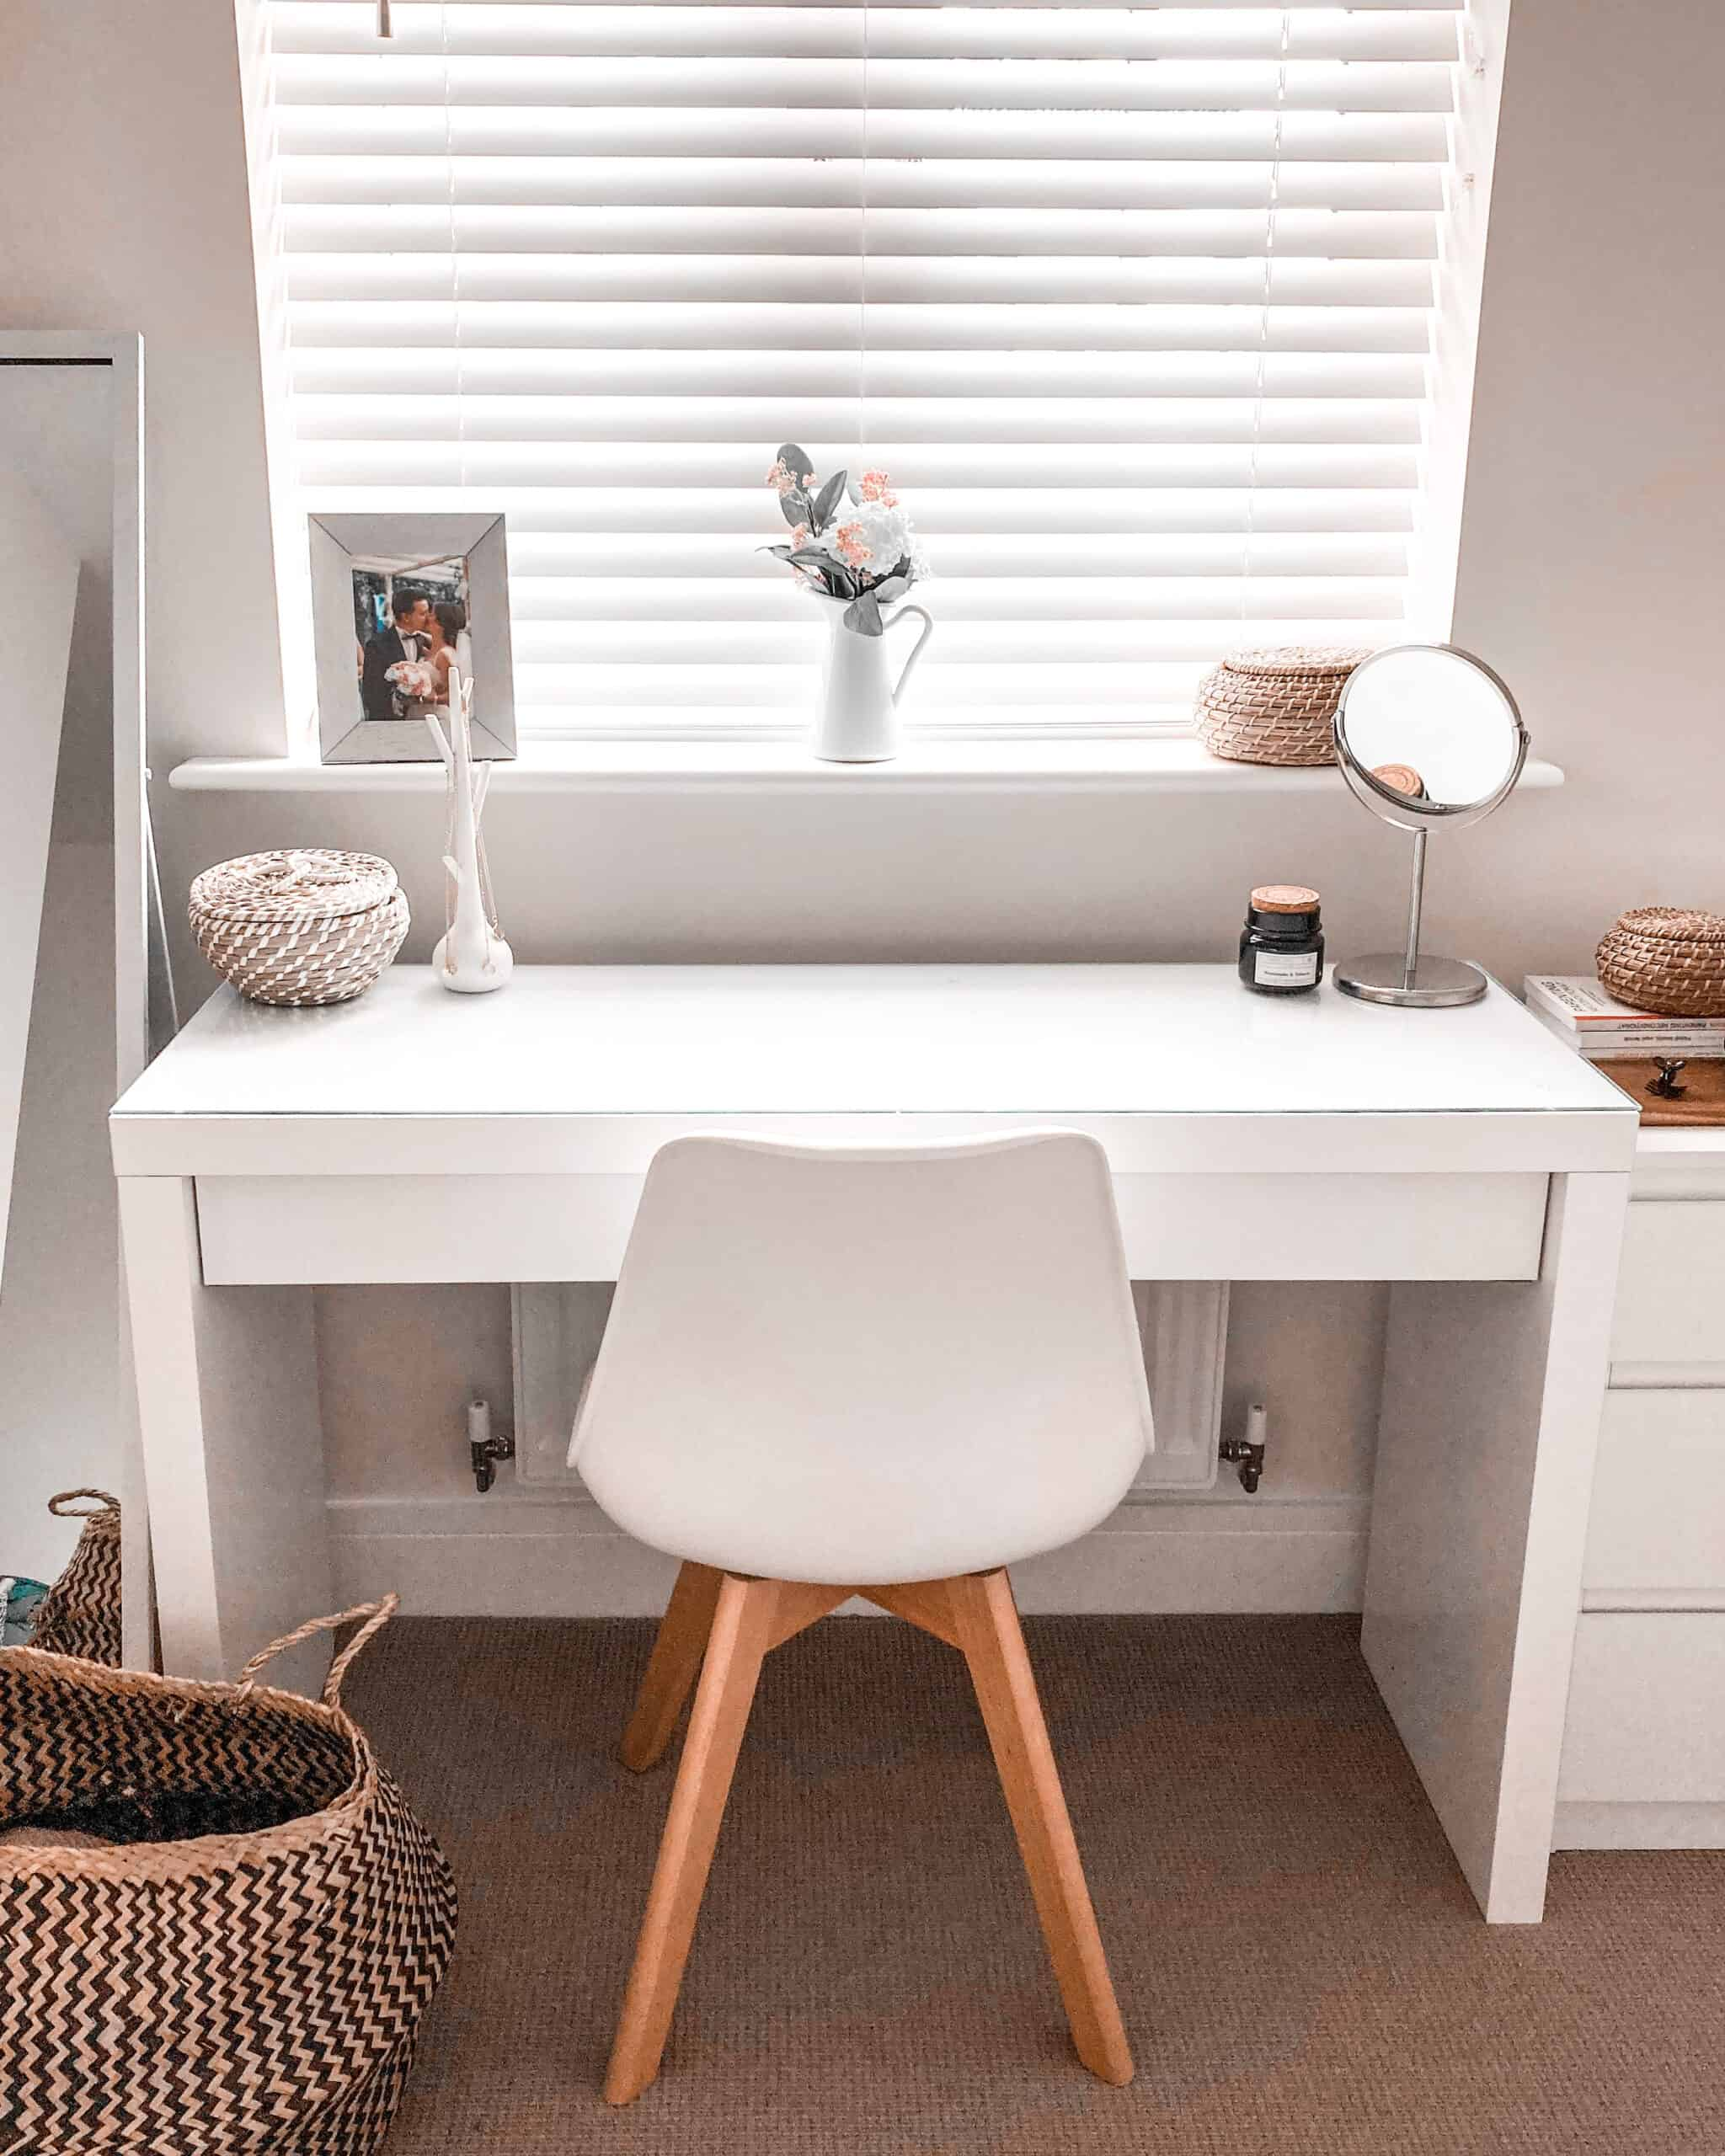 Vanity makeup table IKEA Malm Cleaning tips